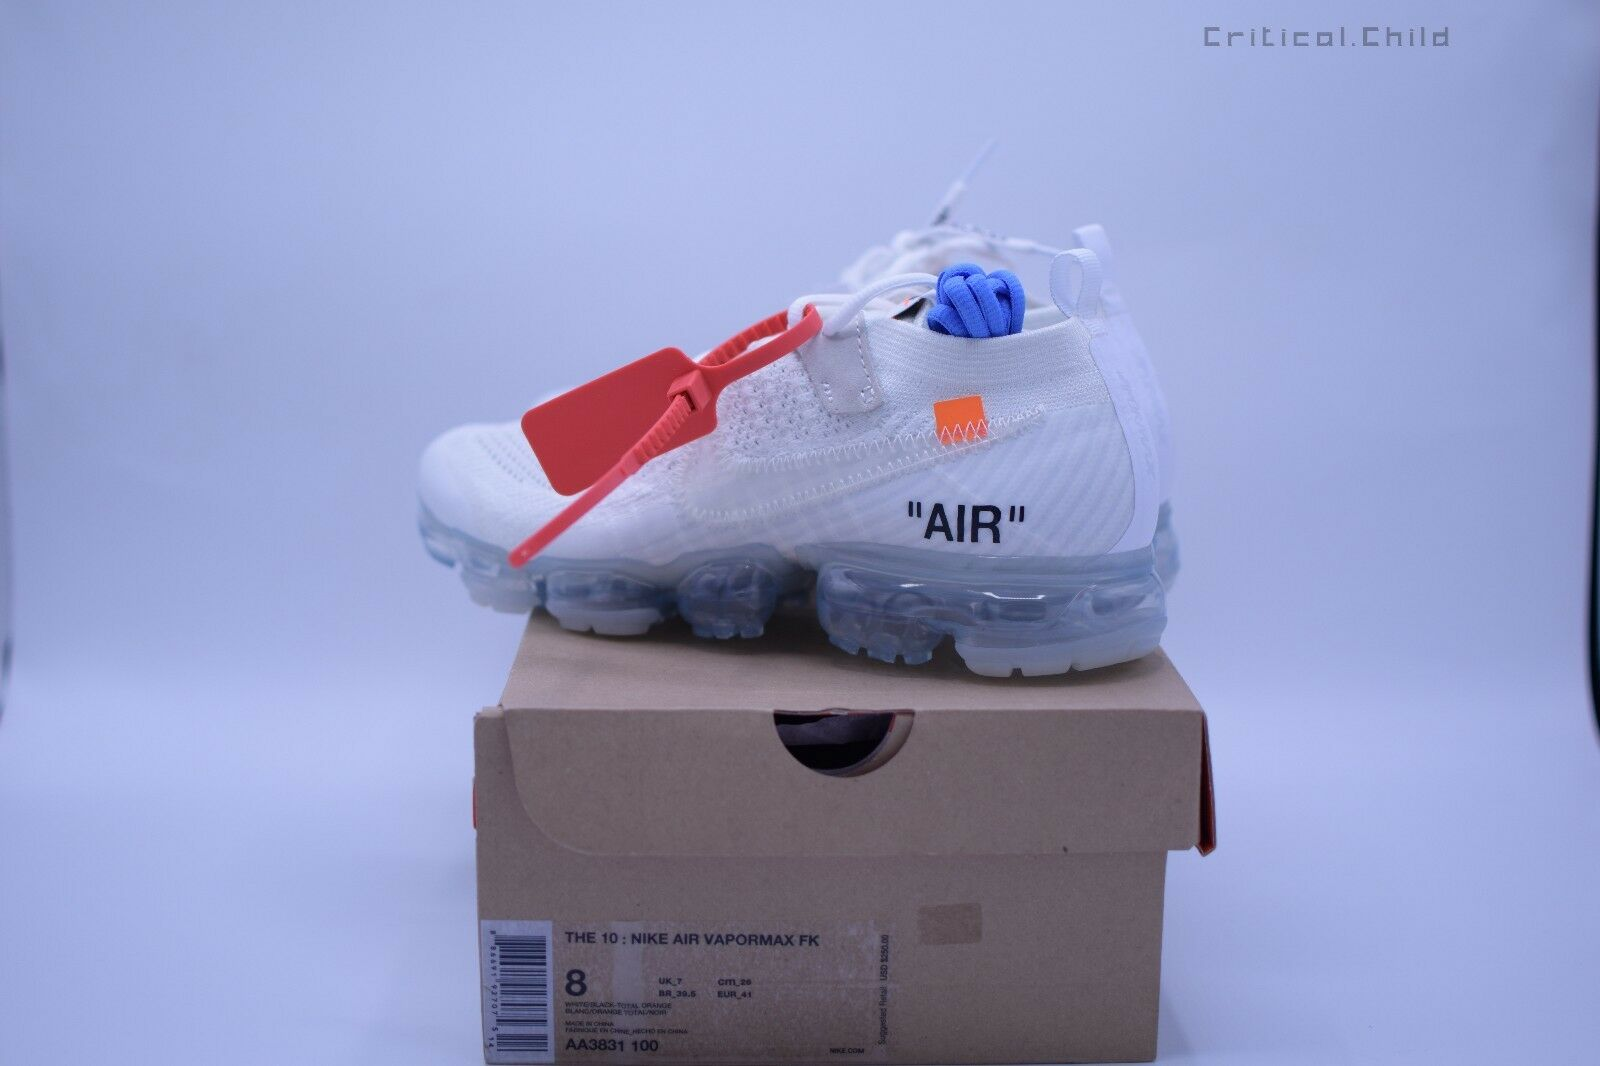 2018  Off White AA3831-100 Nike Air Vapormax x Off White Men's shoes Sz 6 us